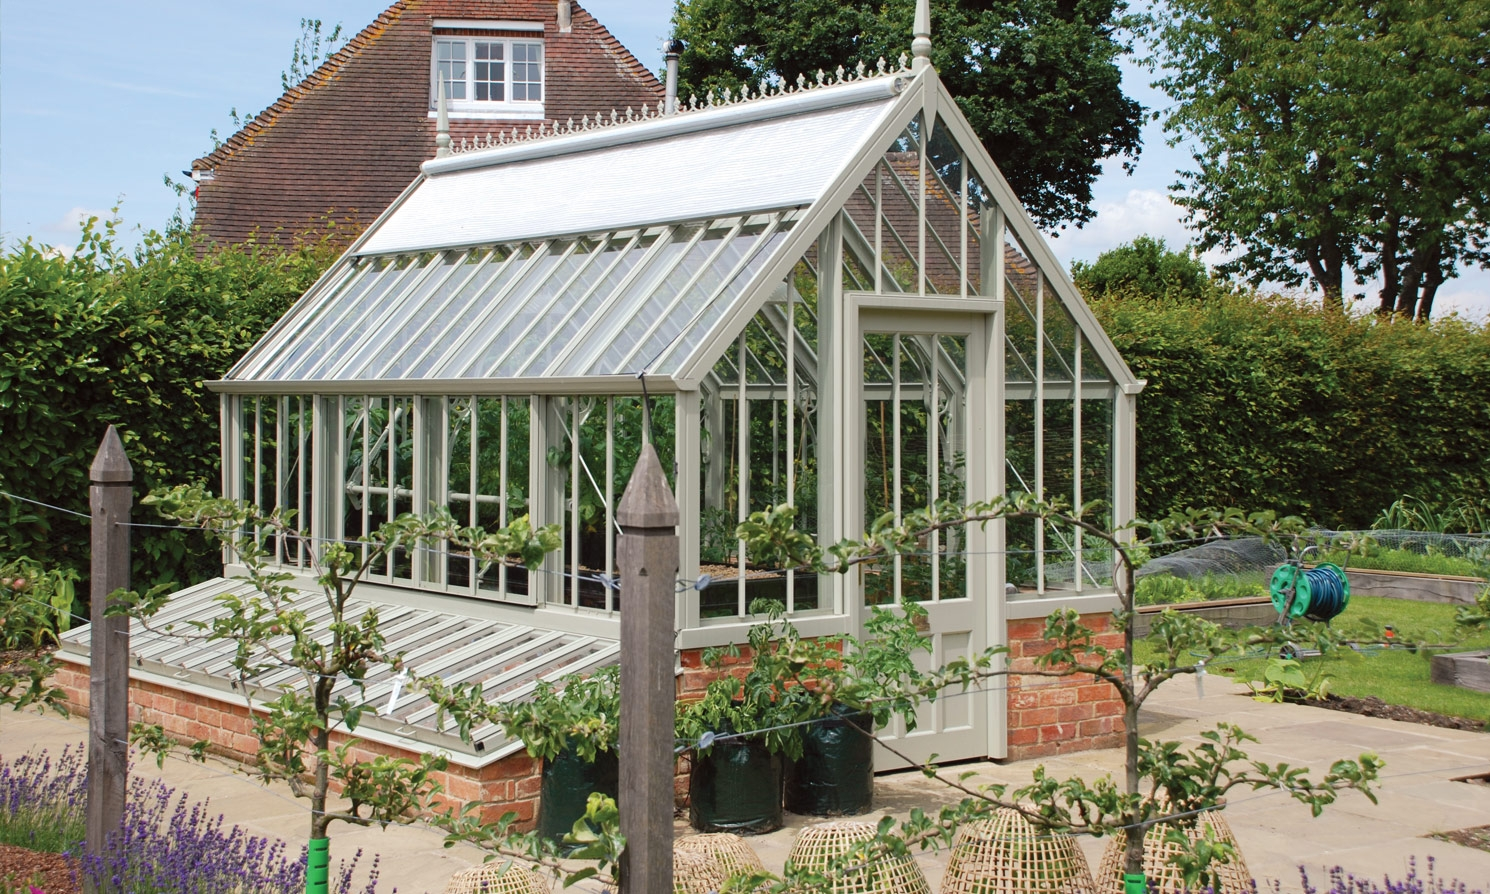 The Scotney National Trust Greenhouses Alitex